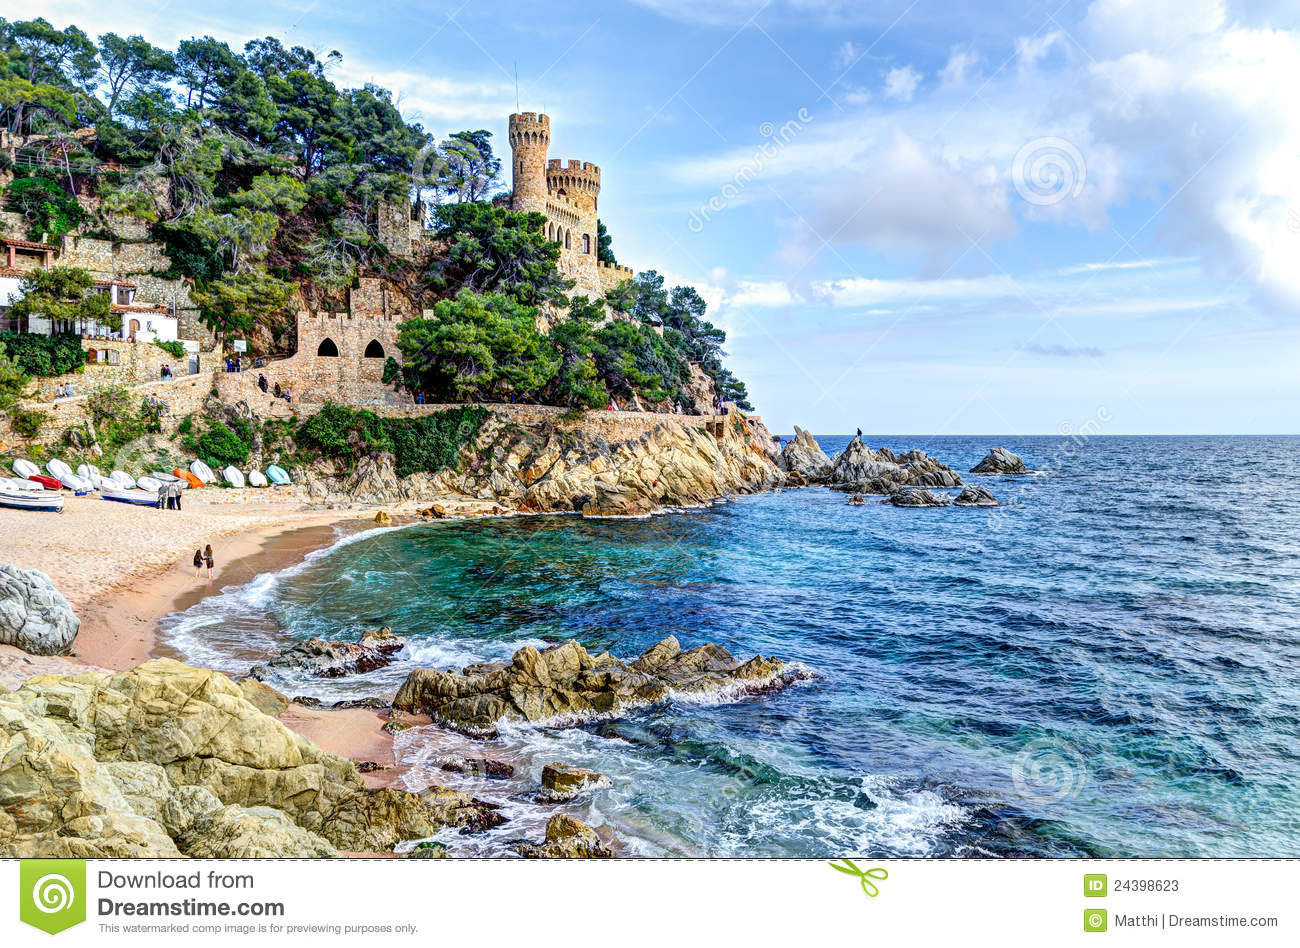 Lloret De Mar Spain  city images : ... sea at the Costa Brava Sant Joan Castle, Lloret de Mar, Spain